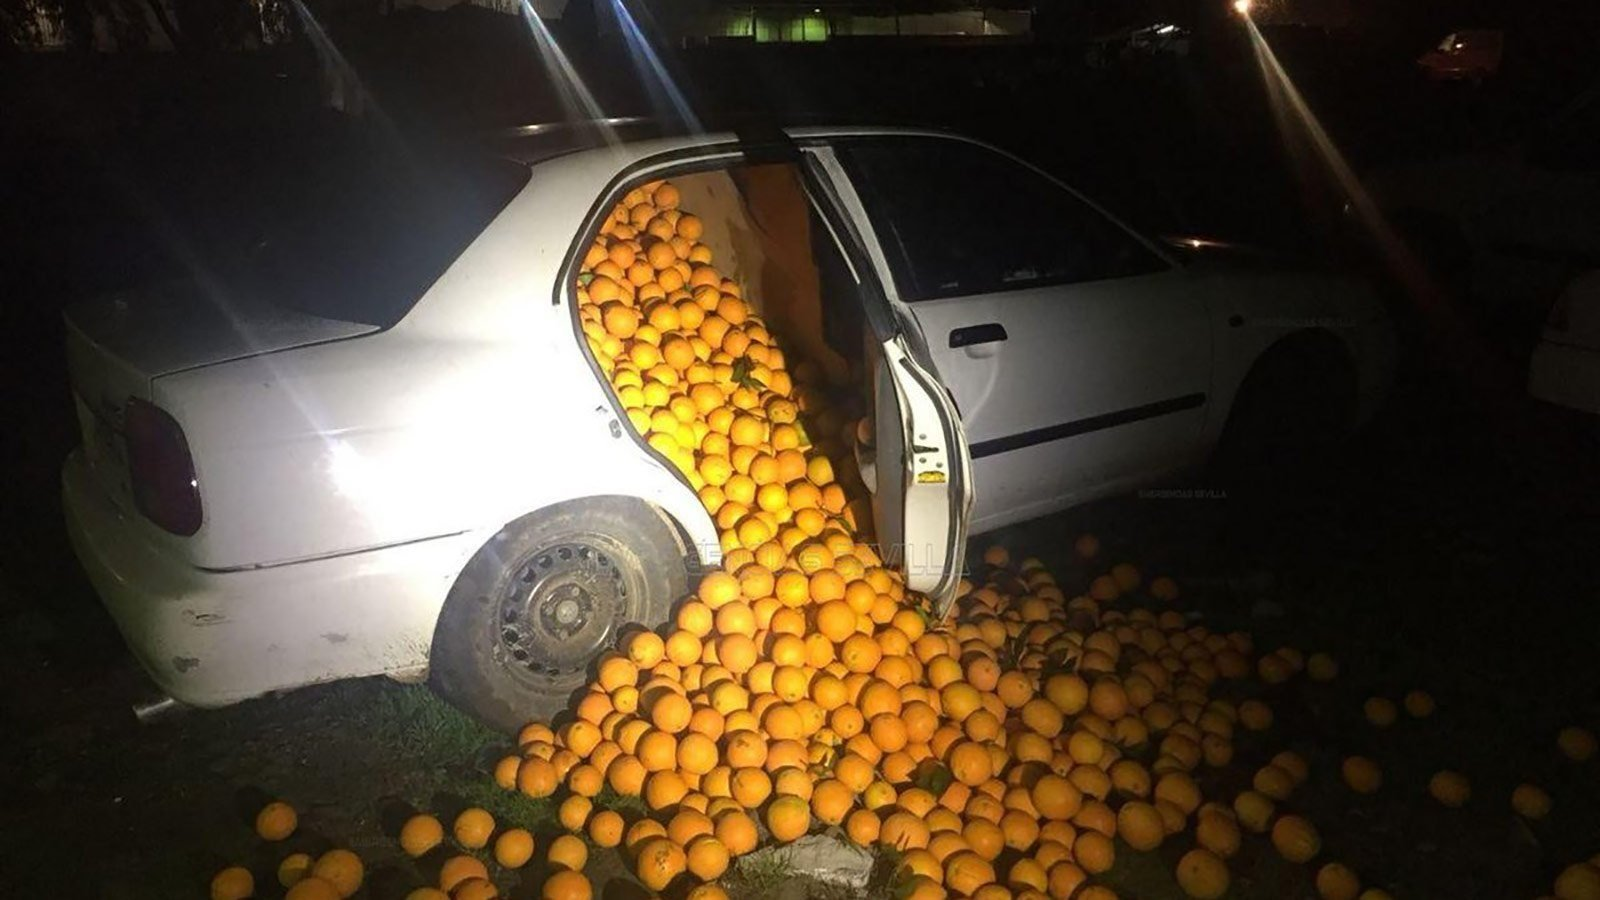 Spanish police stops vehicle with four tonnes of stolen oranges